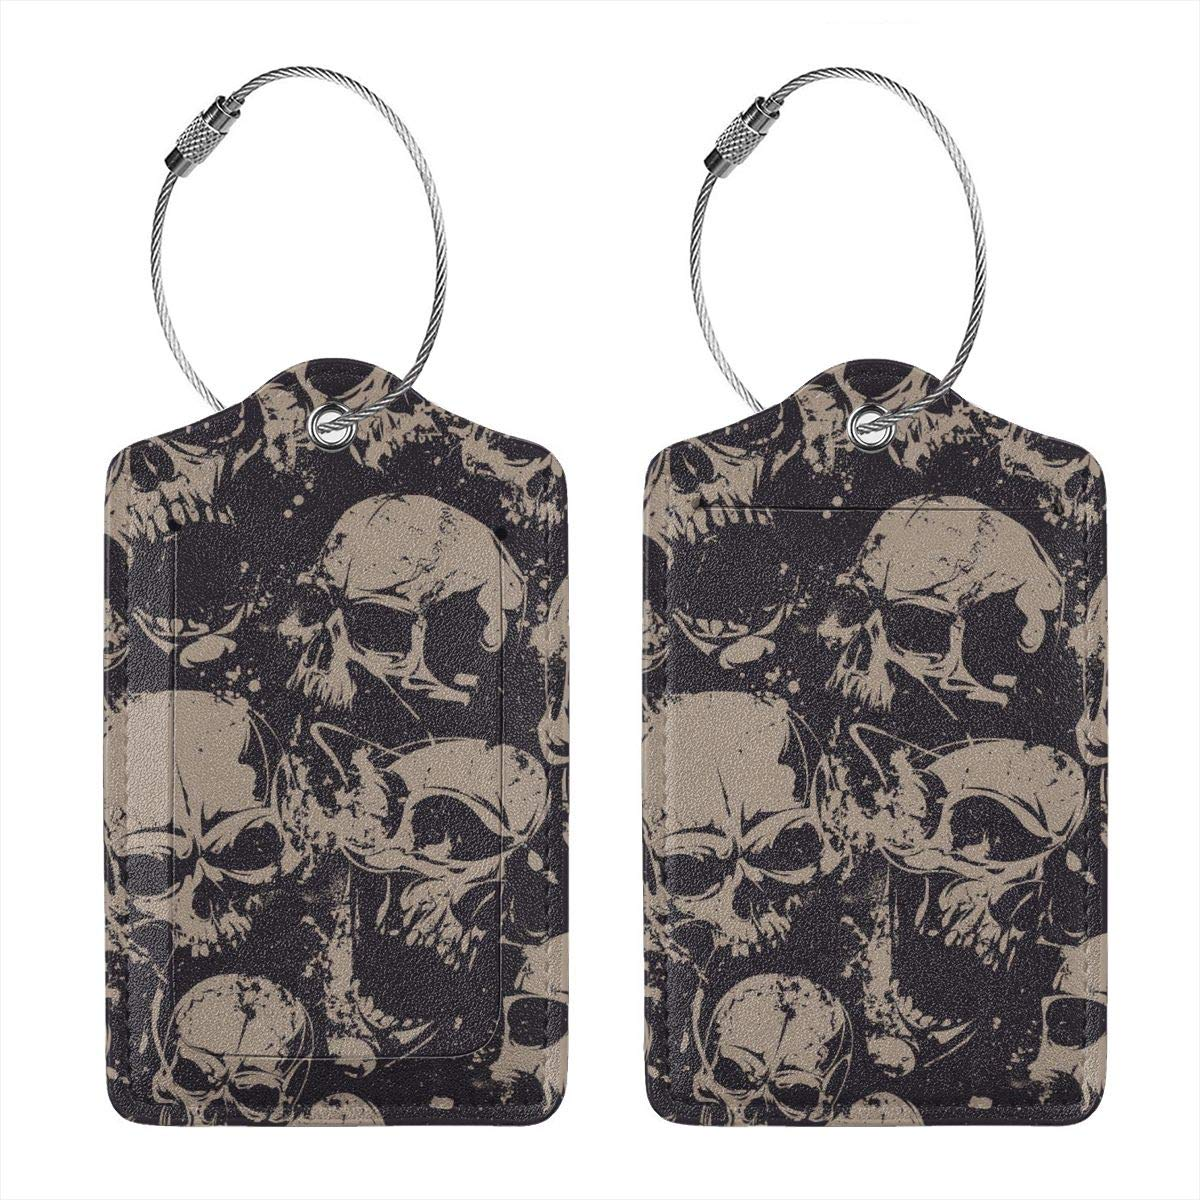 Skulls Grunge Travel Luggage Tags With Full Privacy Cover Leather Case And Stainless Steel Loop